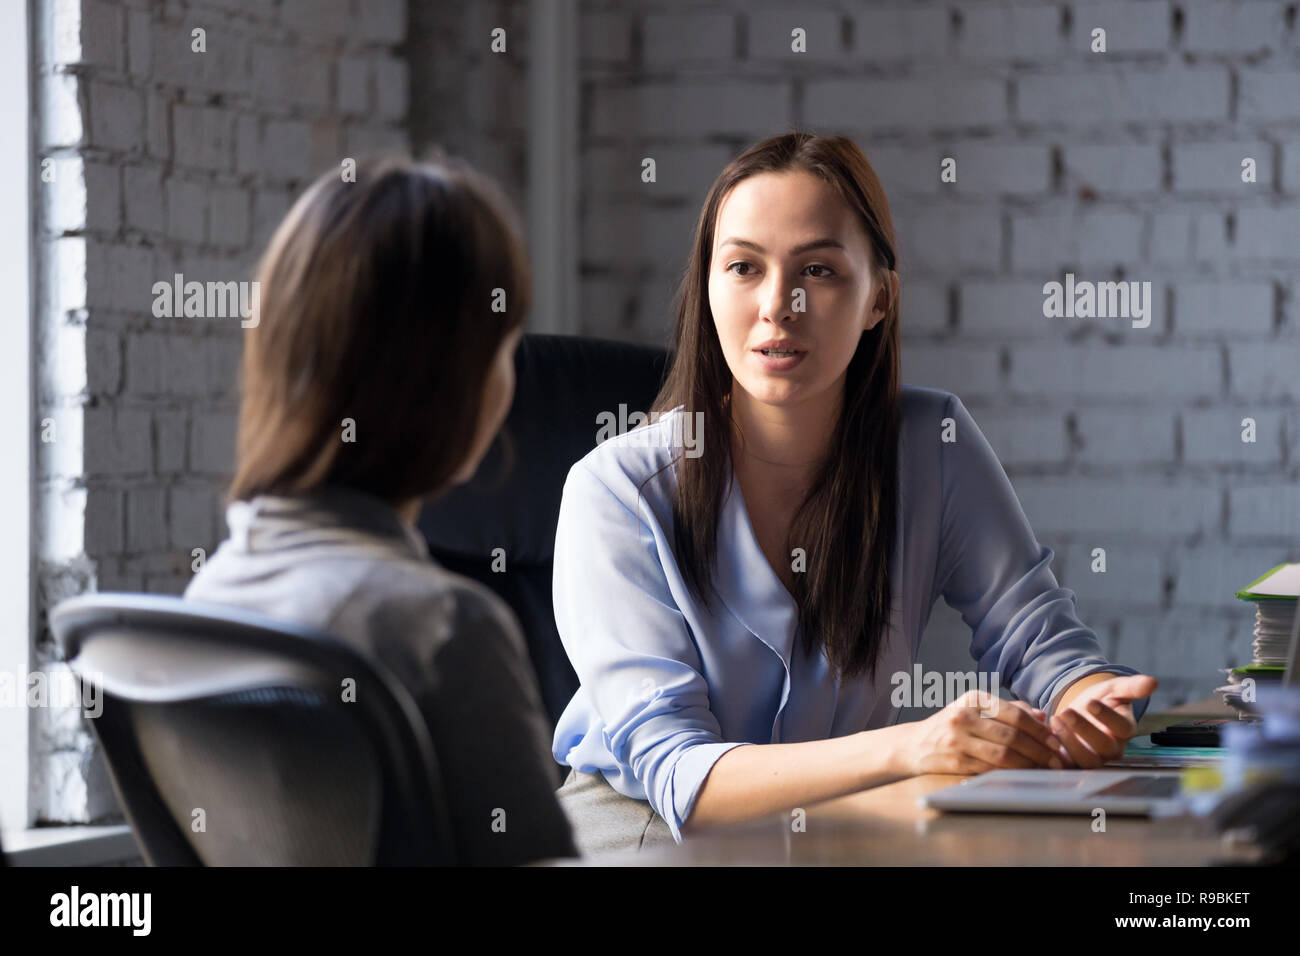 Serious professional female advisor consulting client at meeting - Stock Image